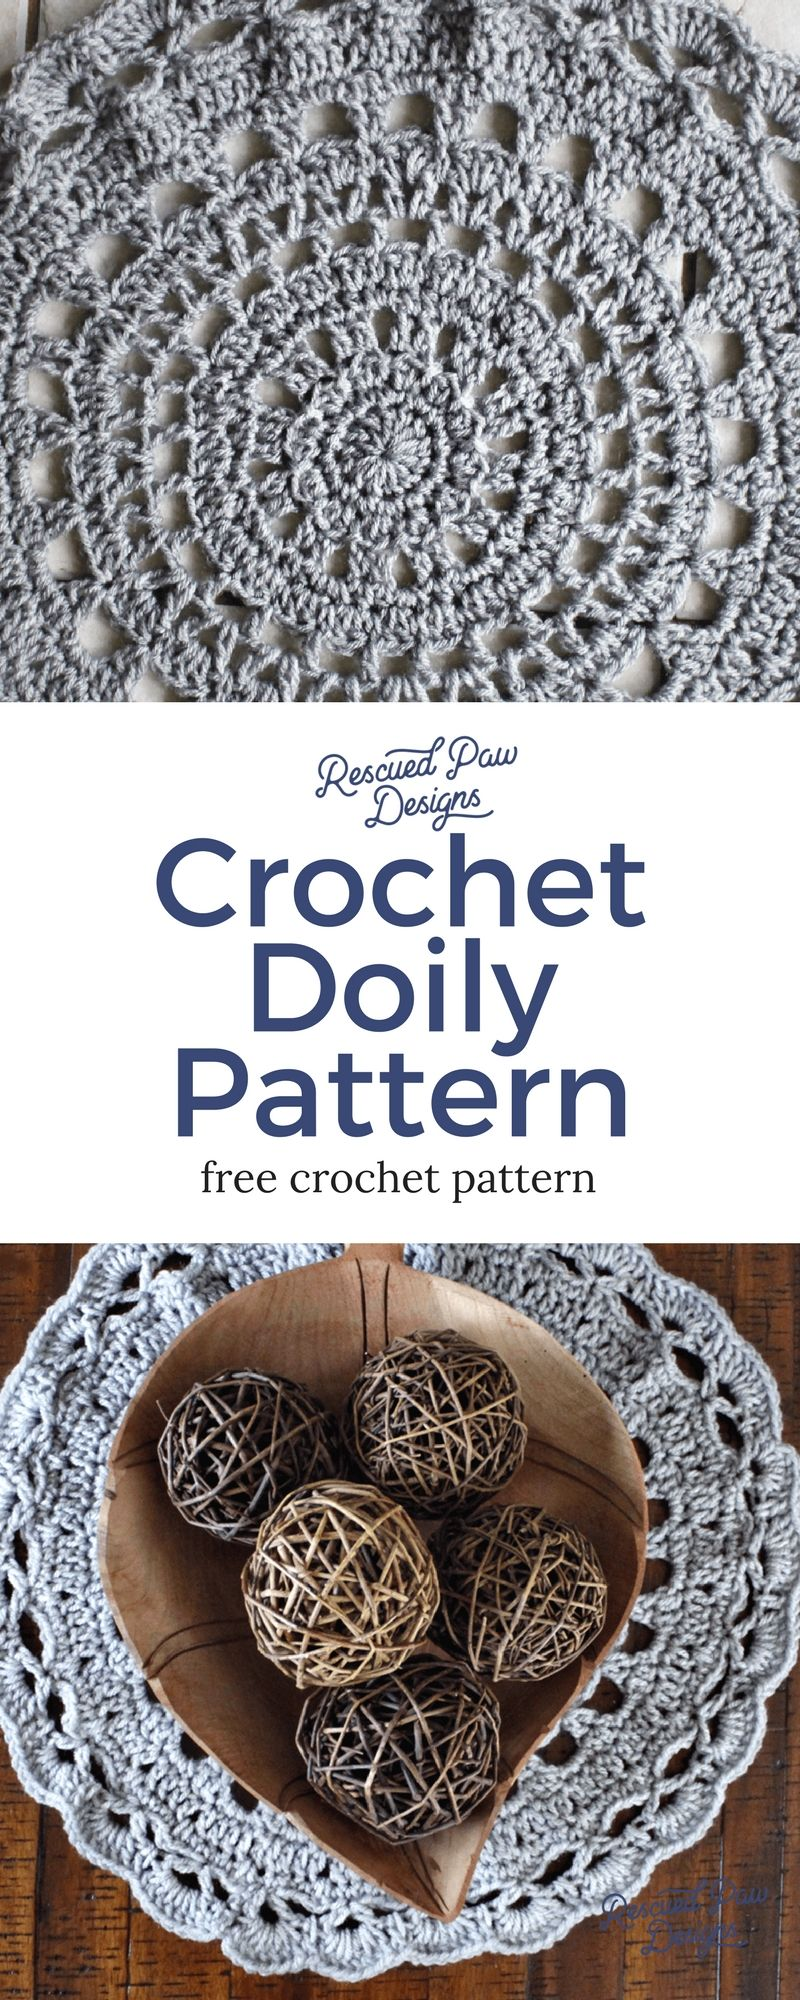 Doily crochet pattern rescued paw designs free crochet doily doily crochet pattern rescued paw designs bankloansurffo Image collections